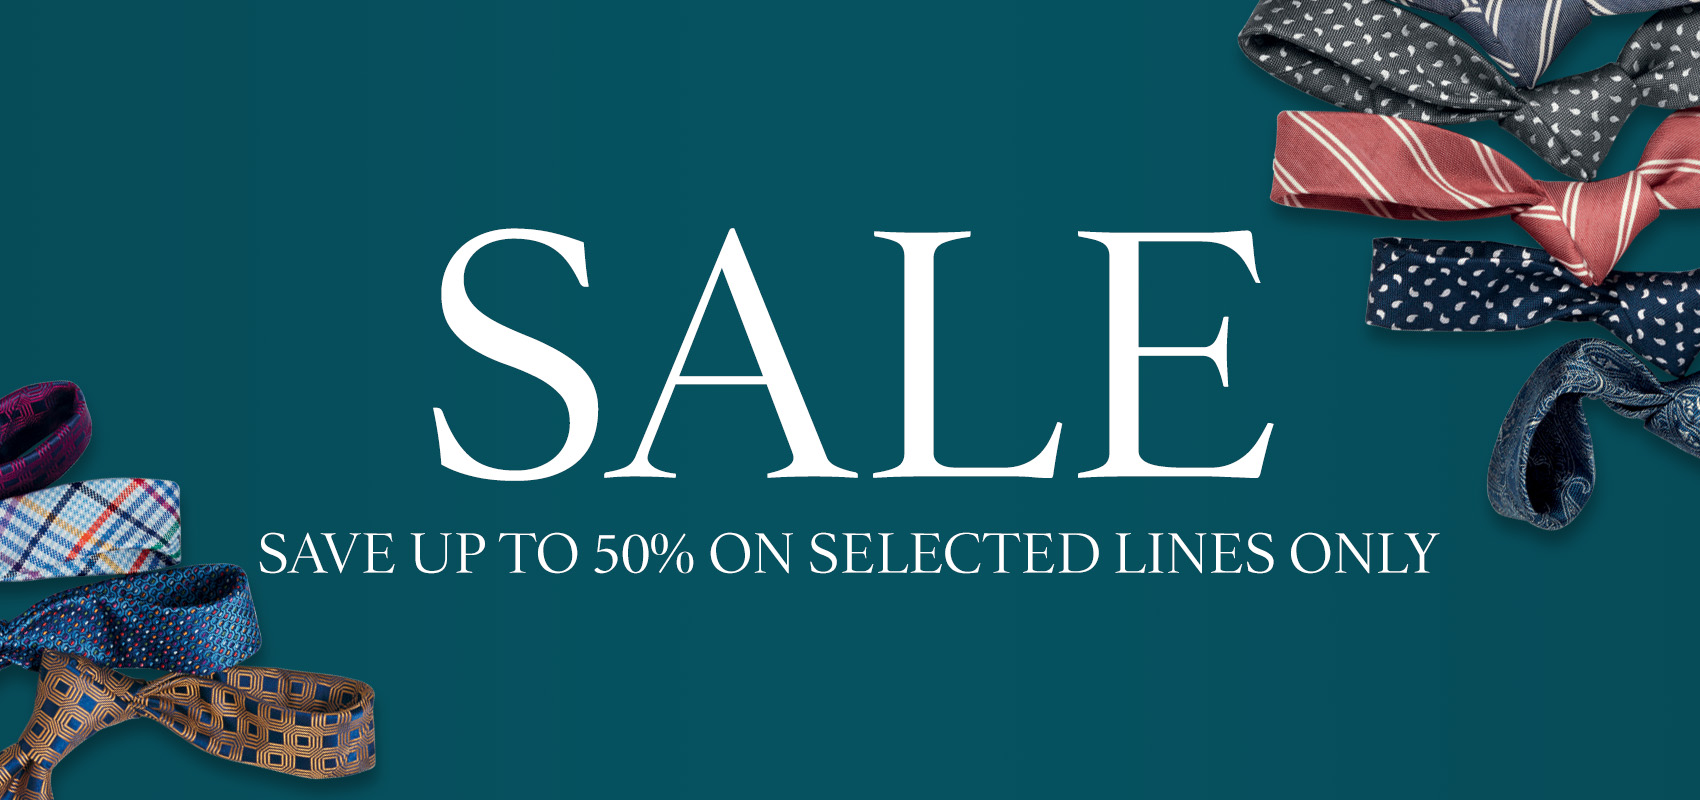 Charles Tyrwhitt Ties - save up to 50% off during our mid season sale on selected lines